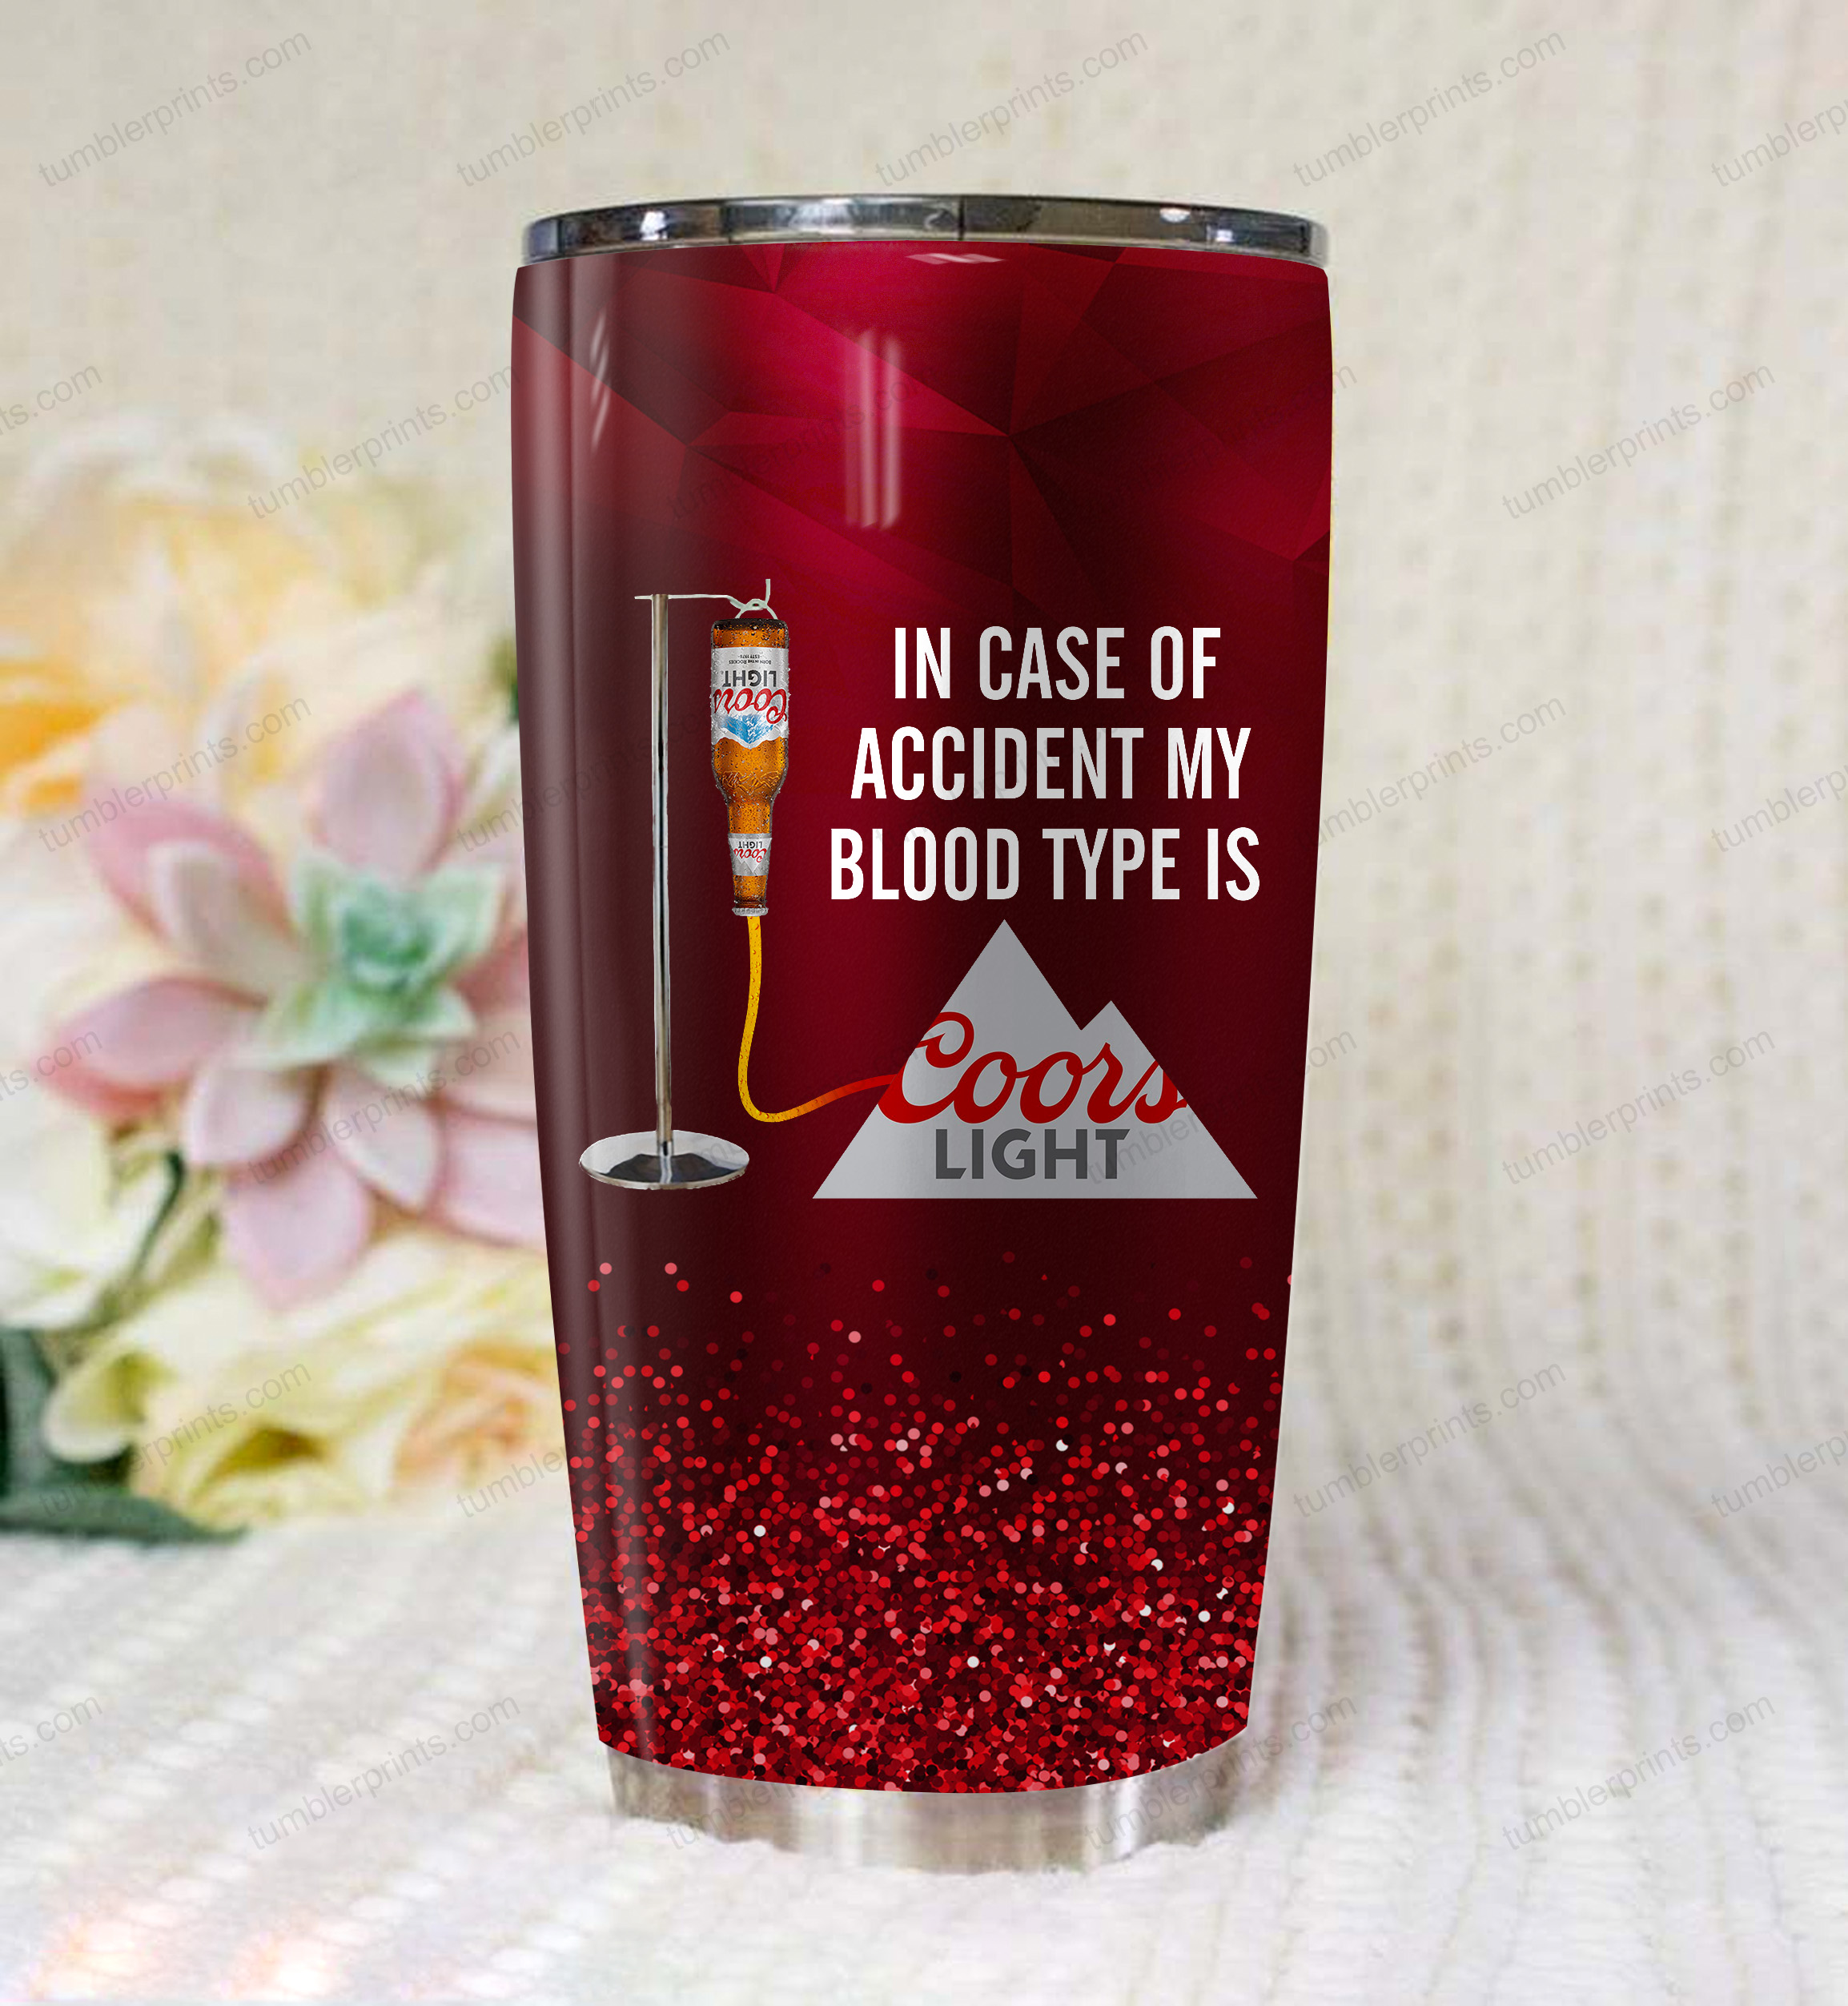 In case of an accident my blood type is coors light tumbler 2